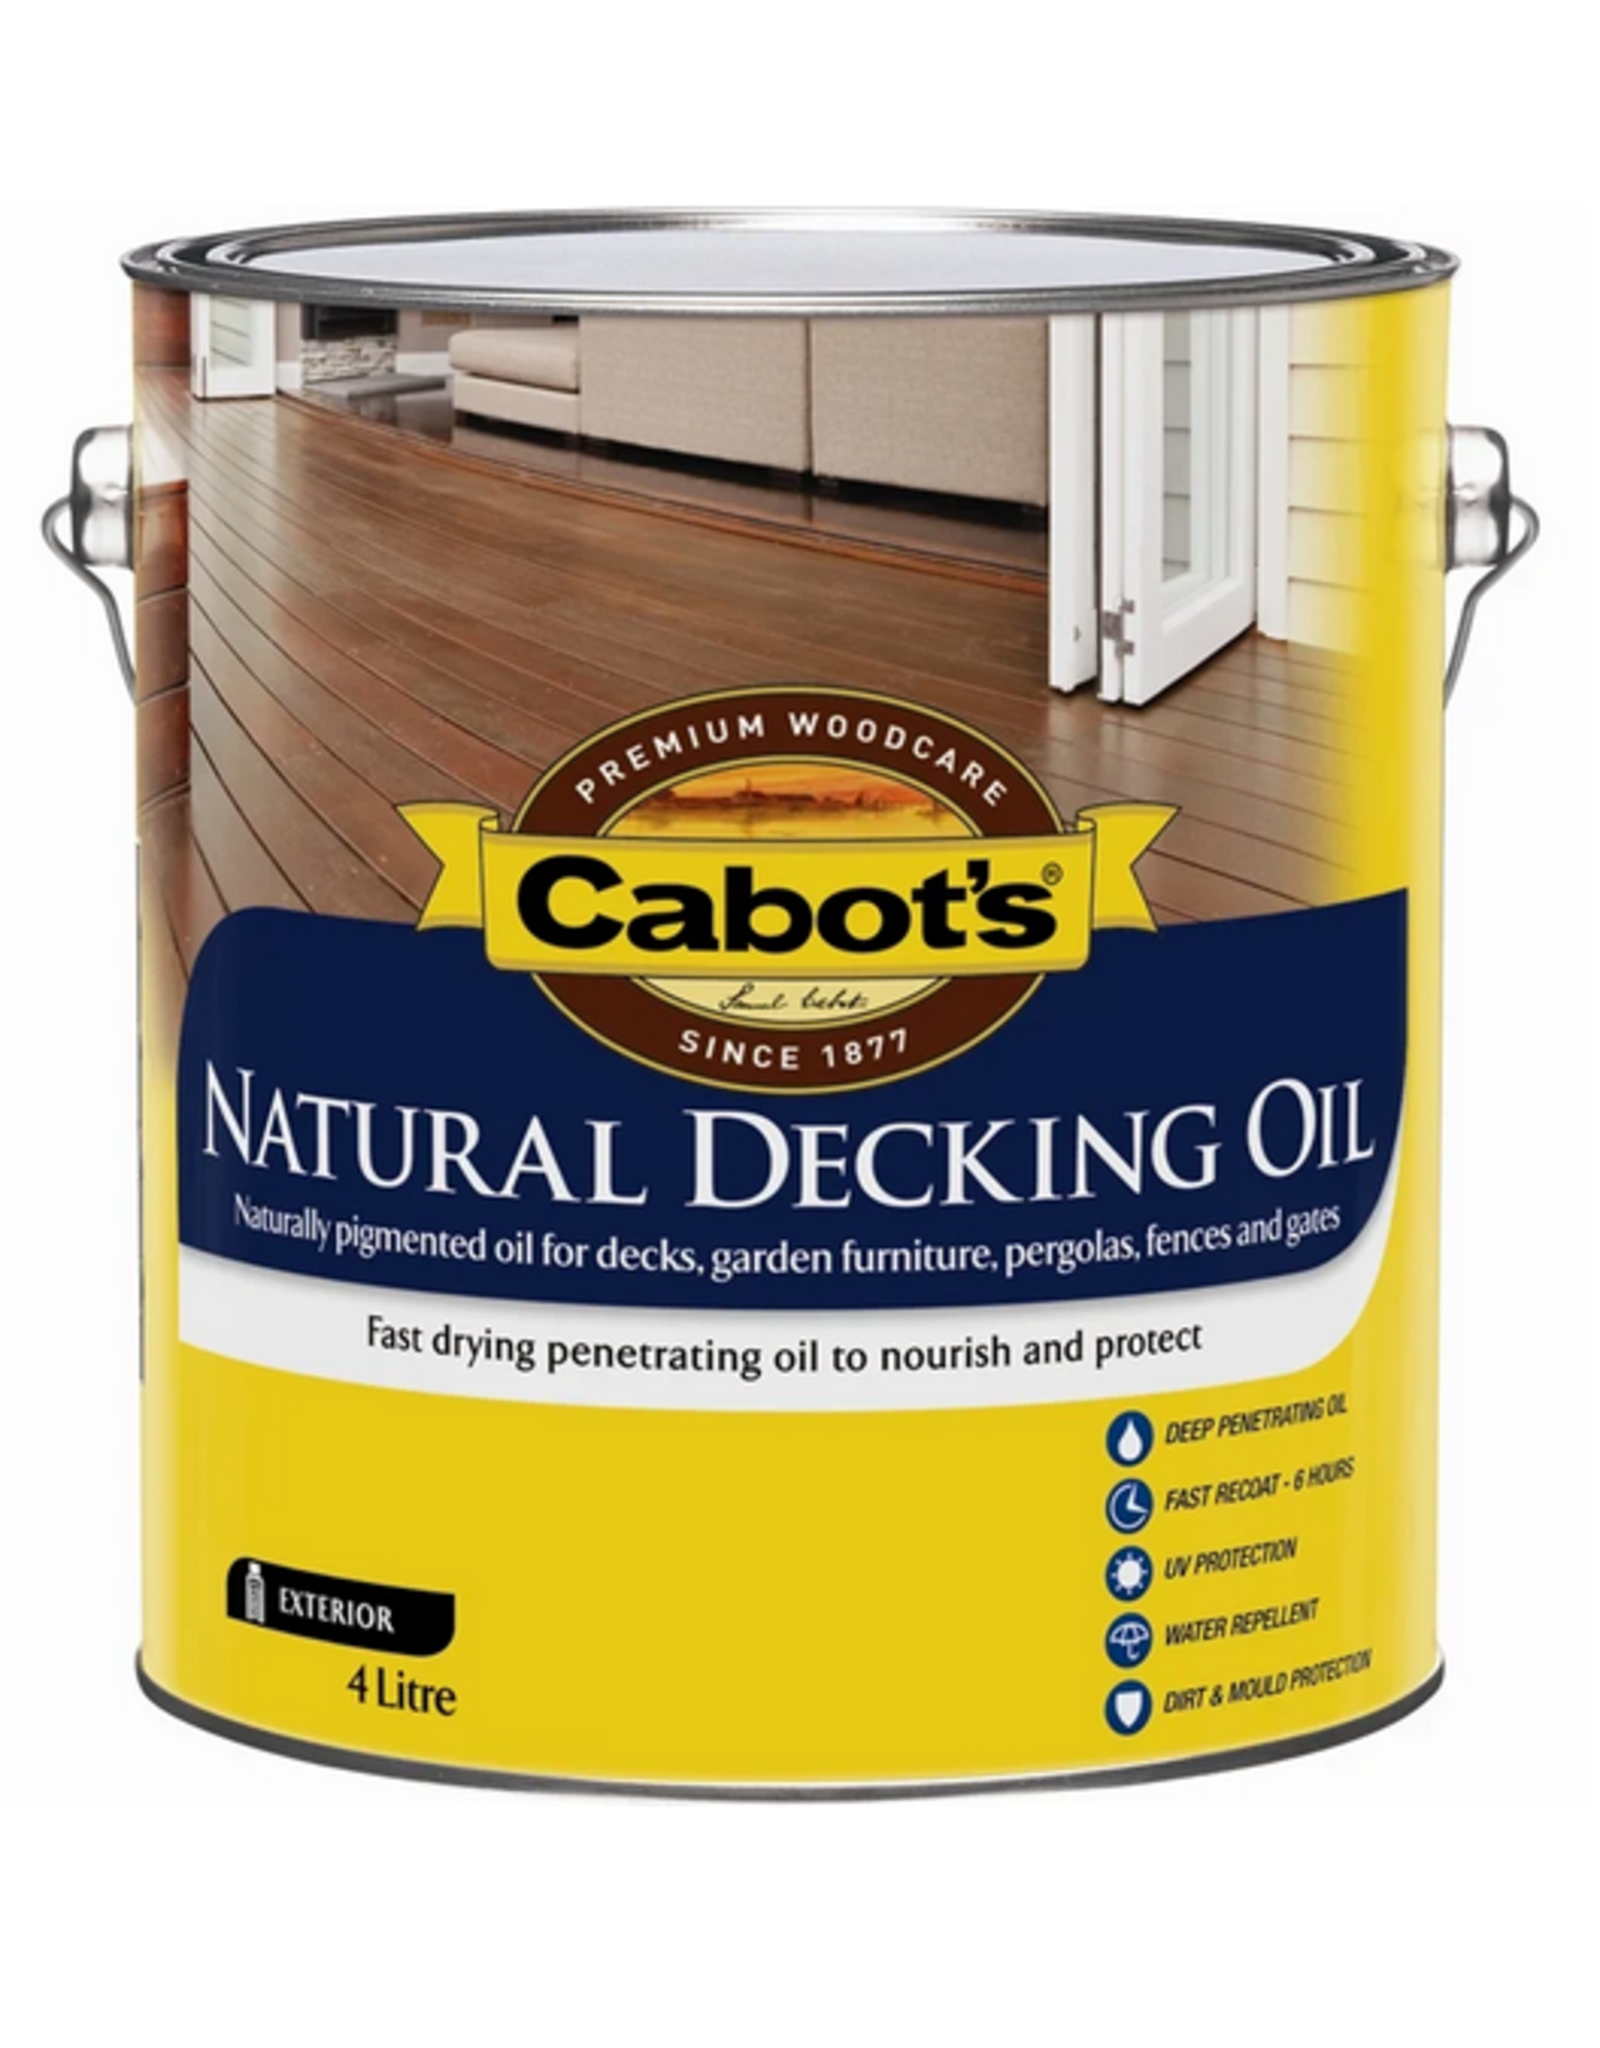 Cabot's Cabot's Natural Decking Oil